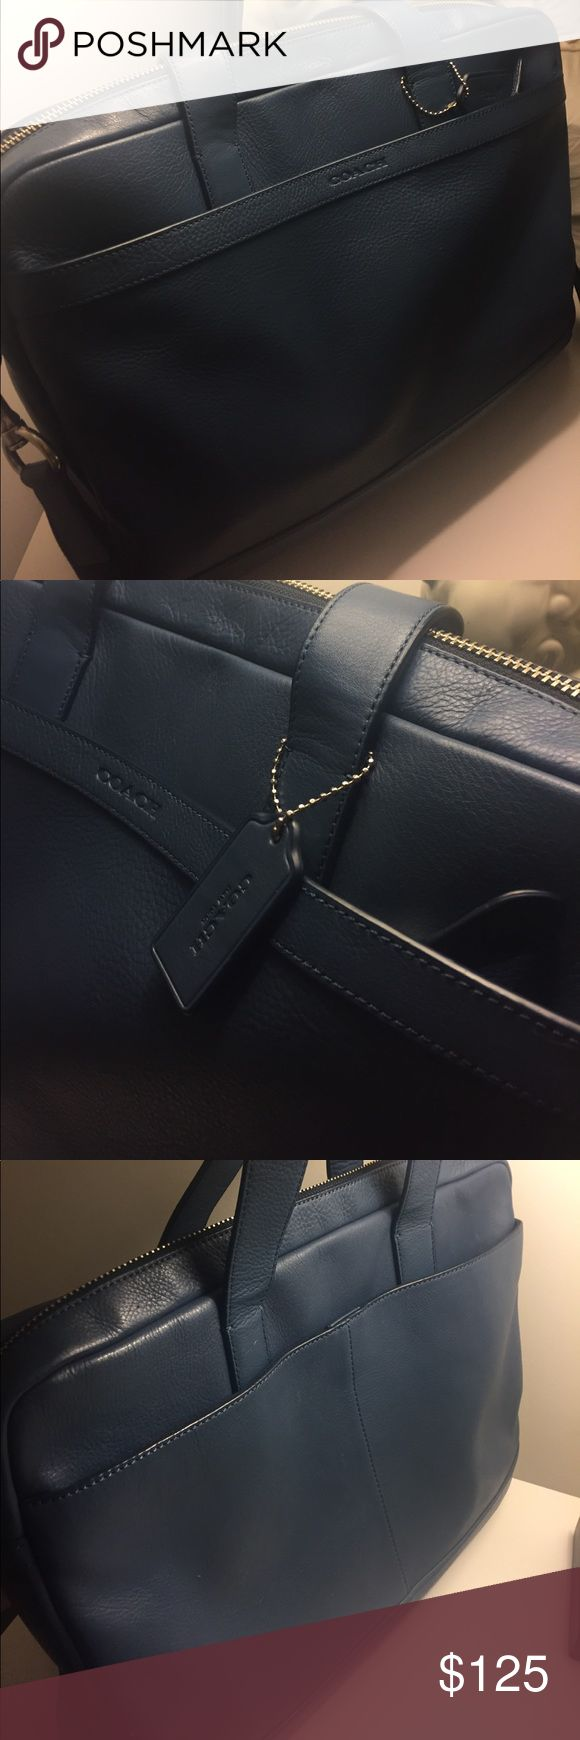 """Coach briefcase 💼 Like new!! Beautiful sapphire blue briefcase with removable strap. Plenty of pockets and storage. Measurements: 15-3/4"""" L x 11-1/4""""H x2-3/4"""" W Coach Bags"""